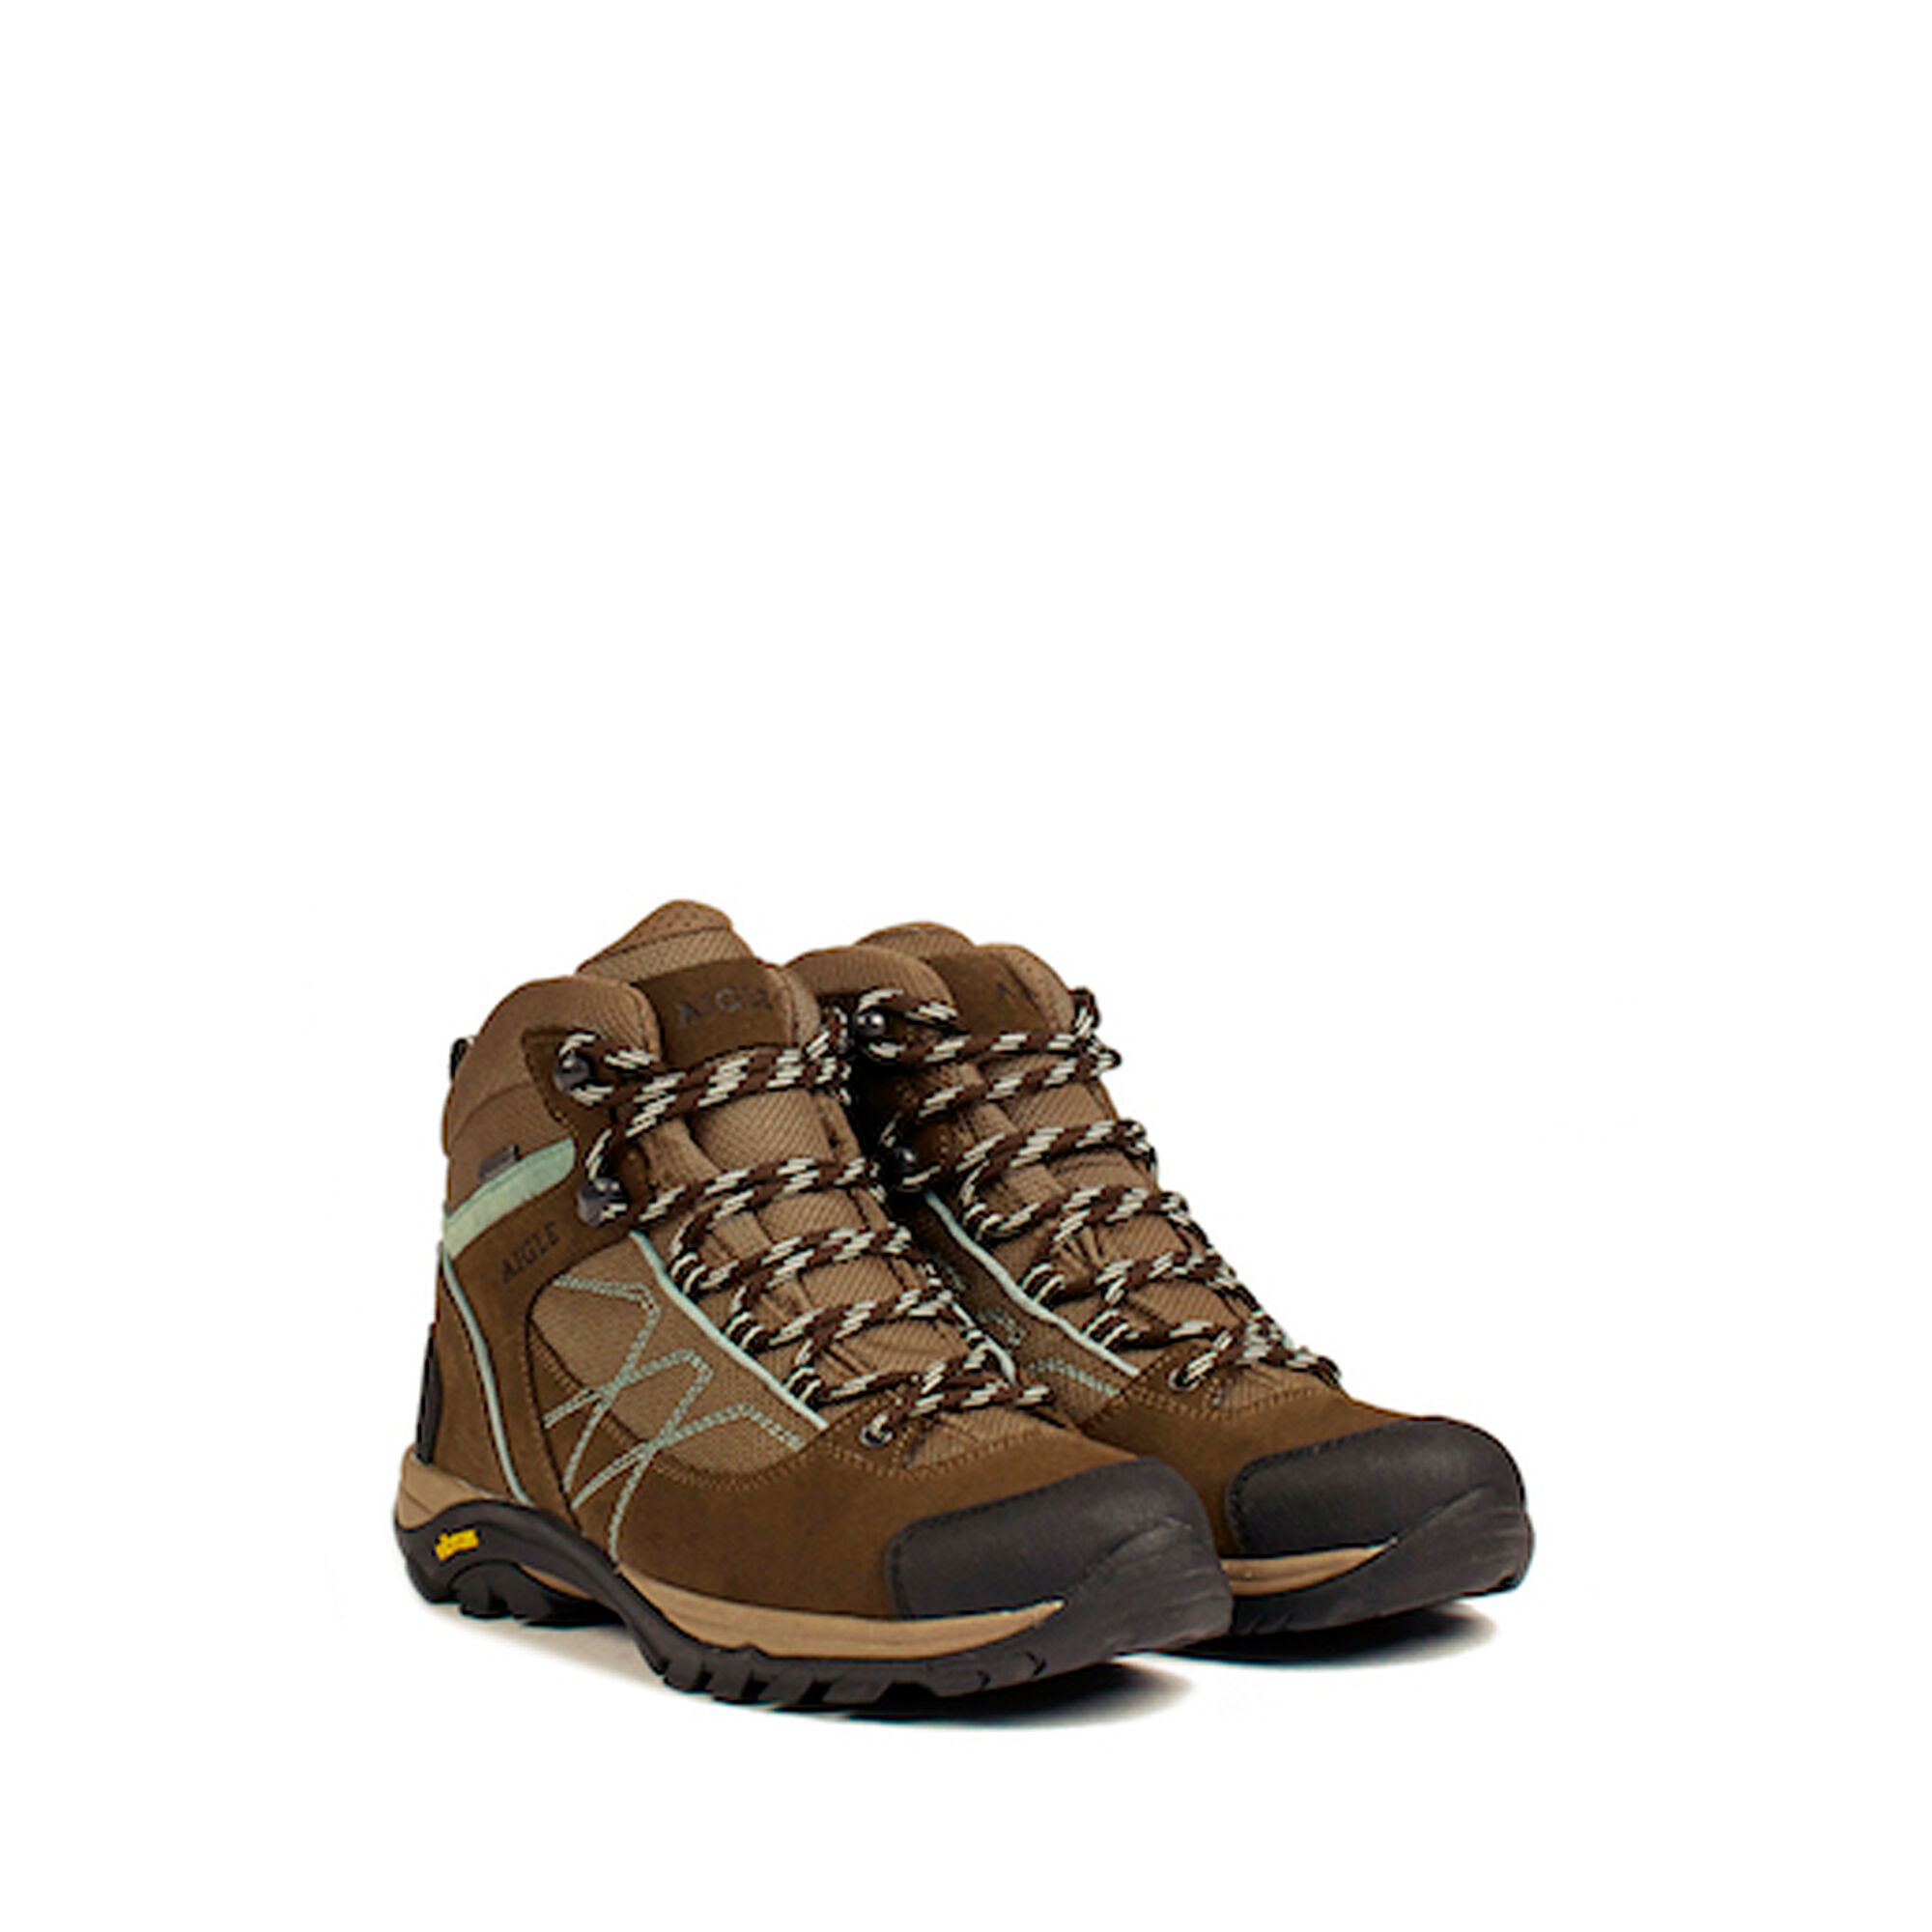 Chaussures Chaussures Bottines AIGLE Chaussures AIGLE femme femme femme femme Bottines rfHrqwa